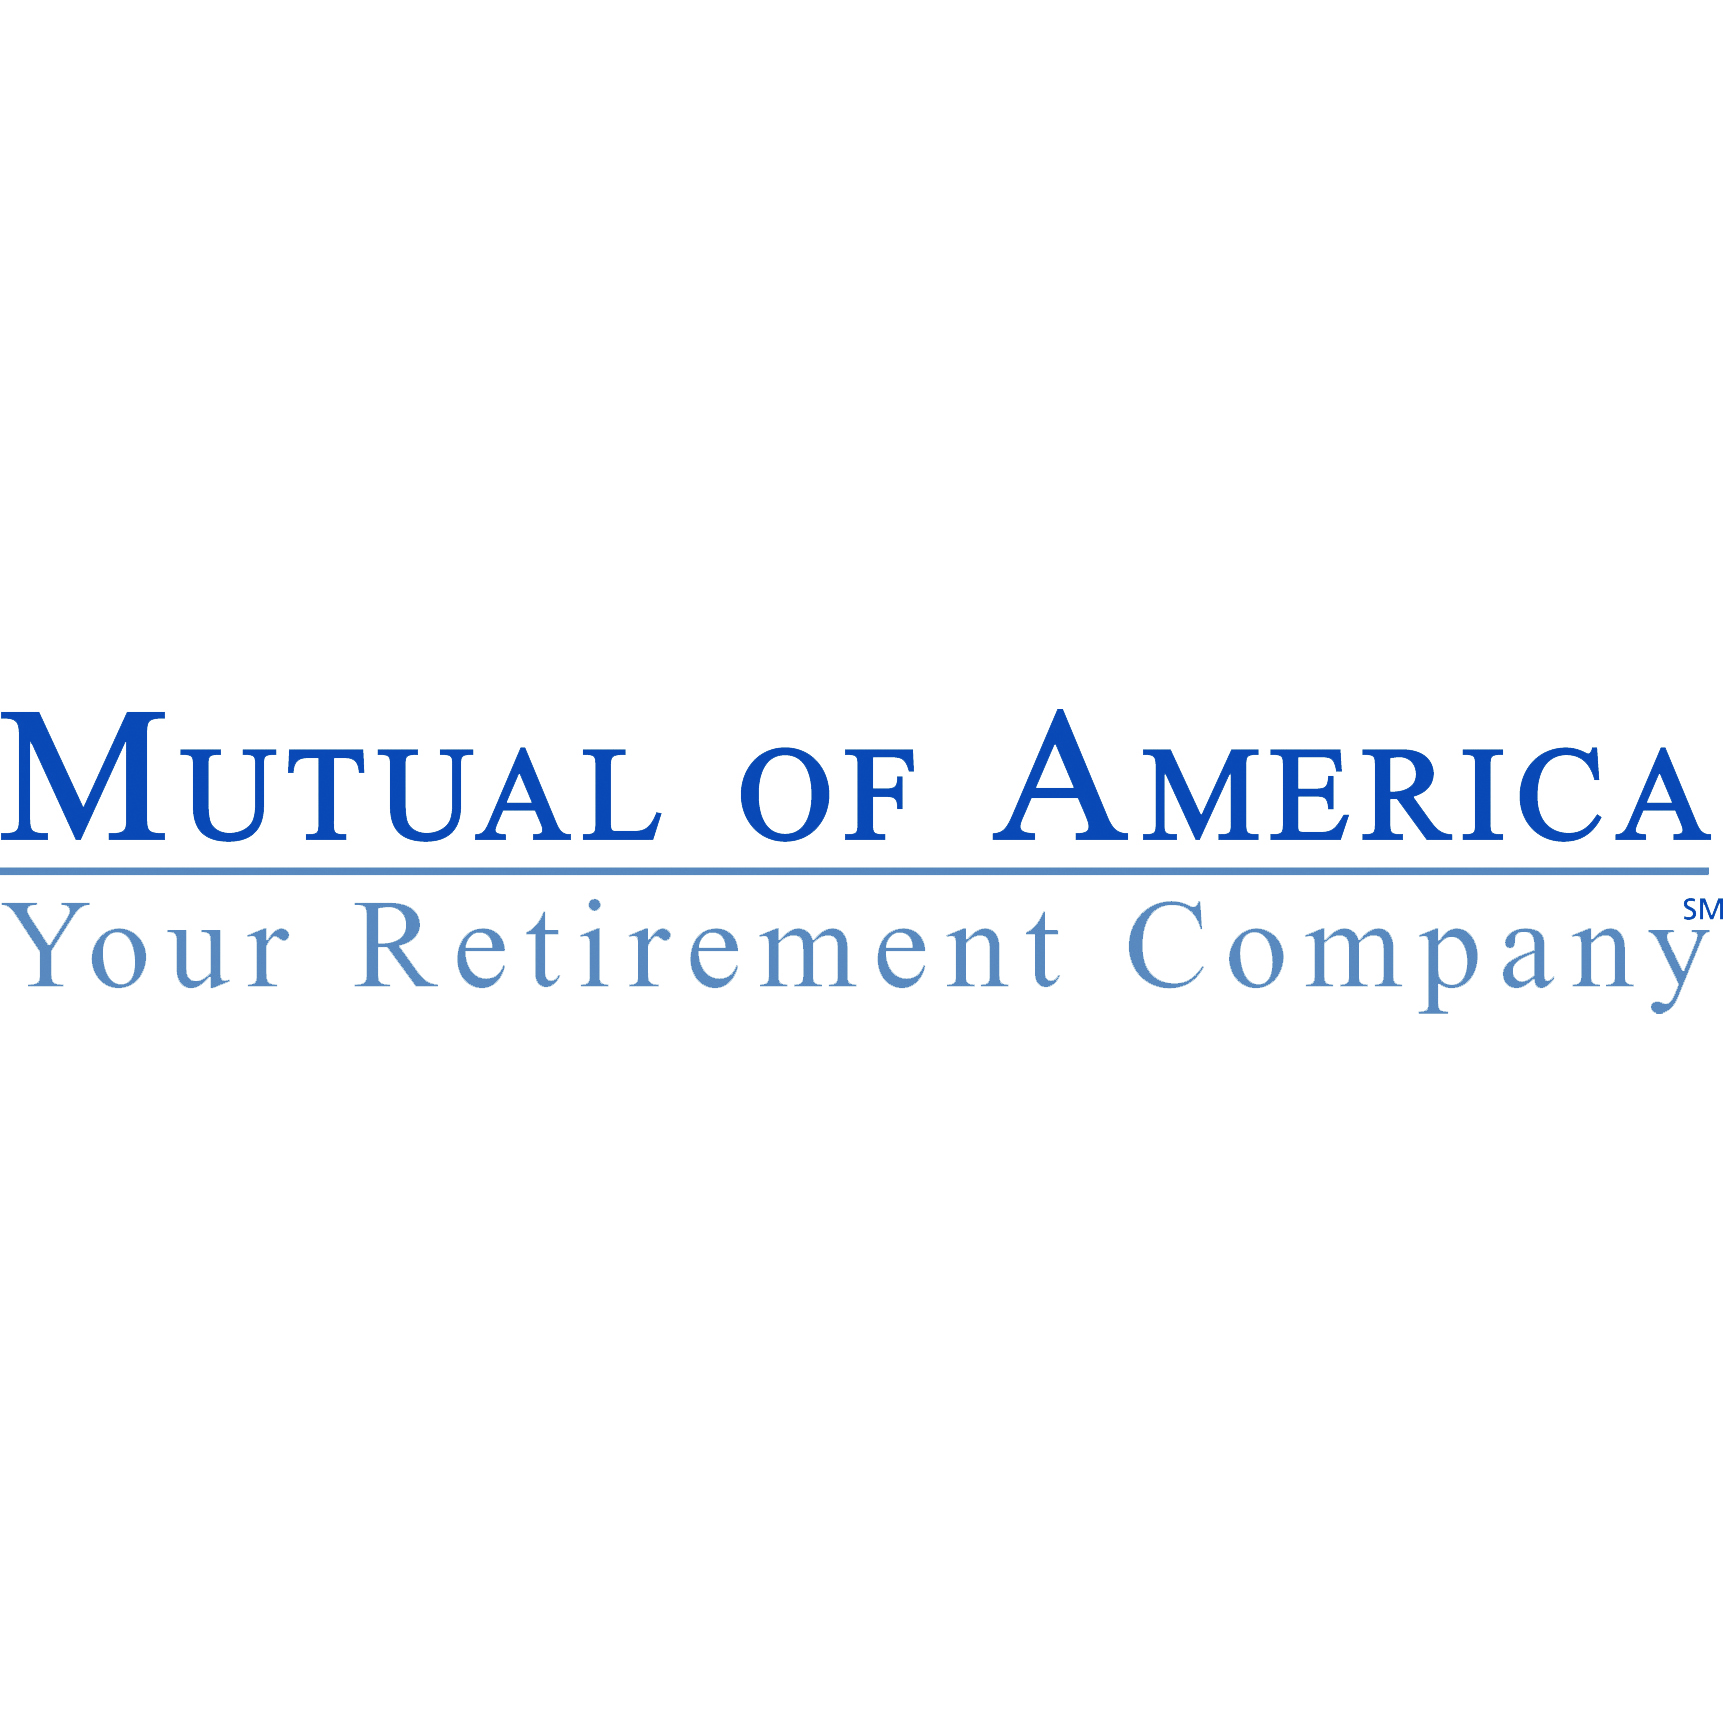 Gold Sponsor & Exhibitor - Mutual of America